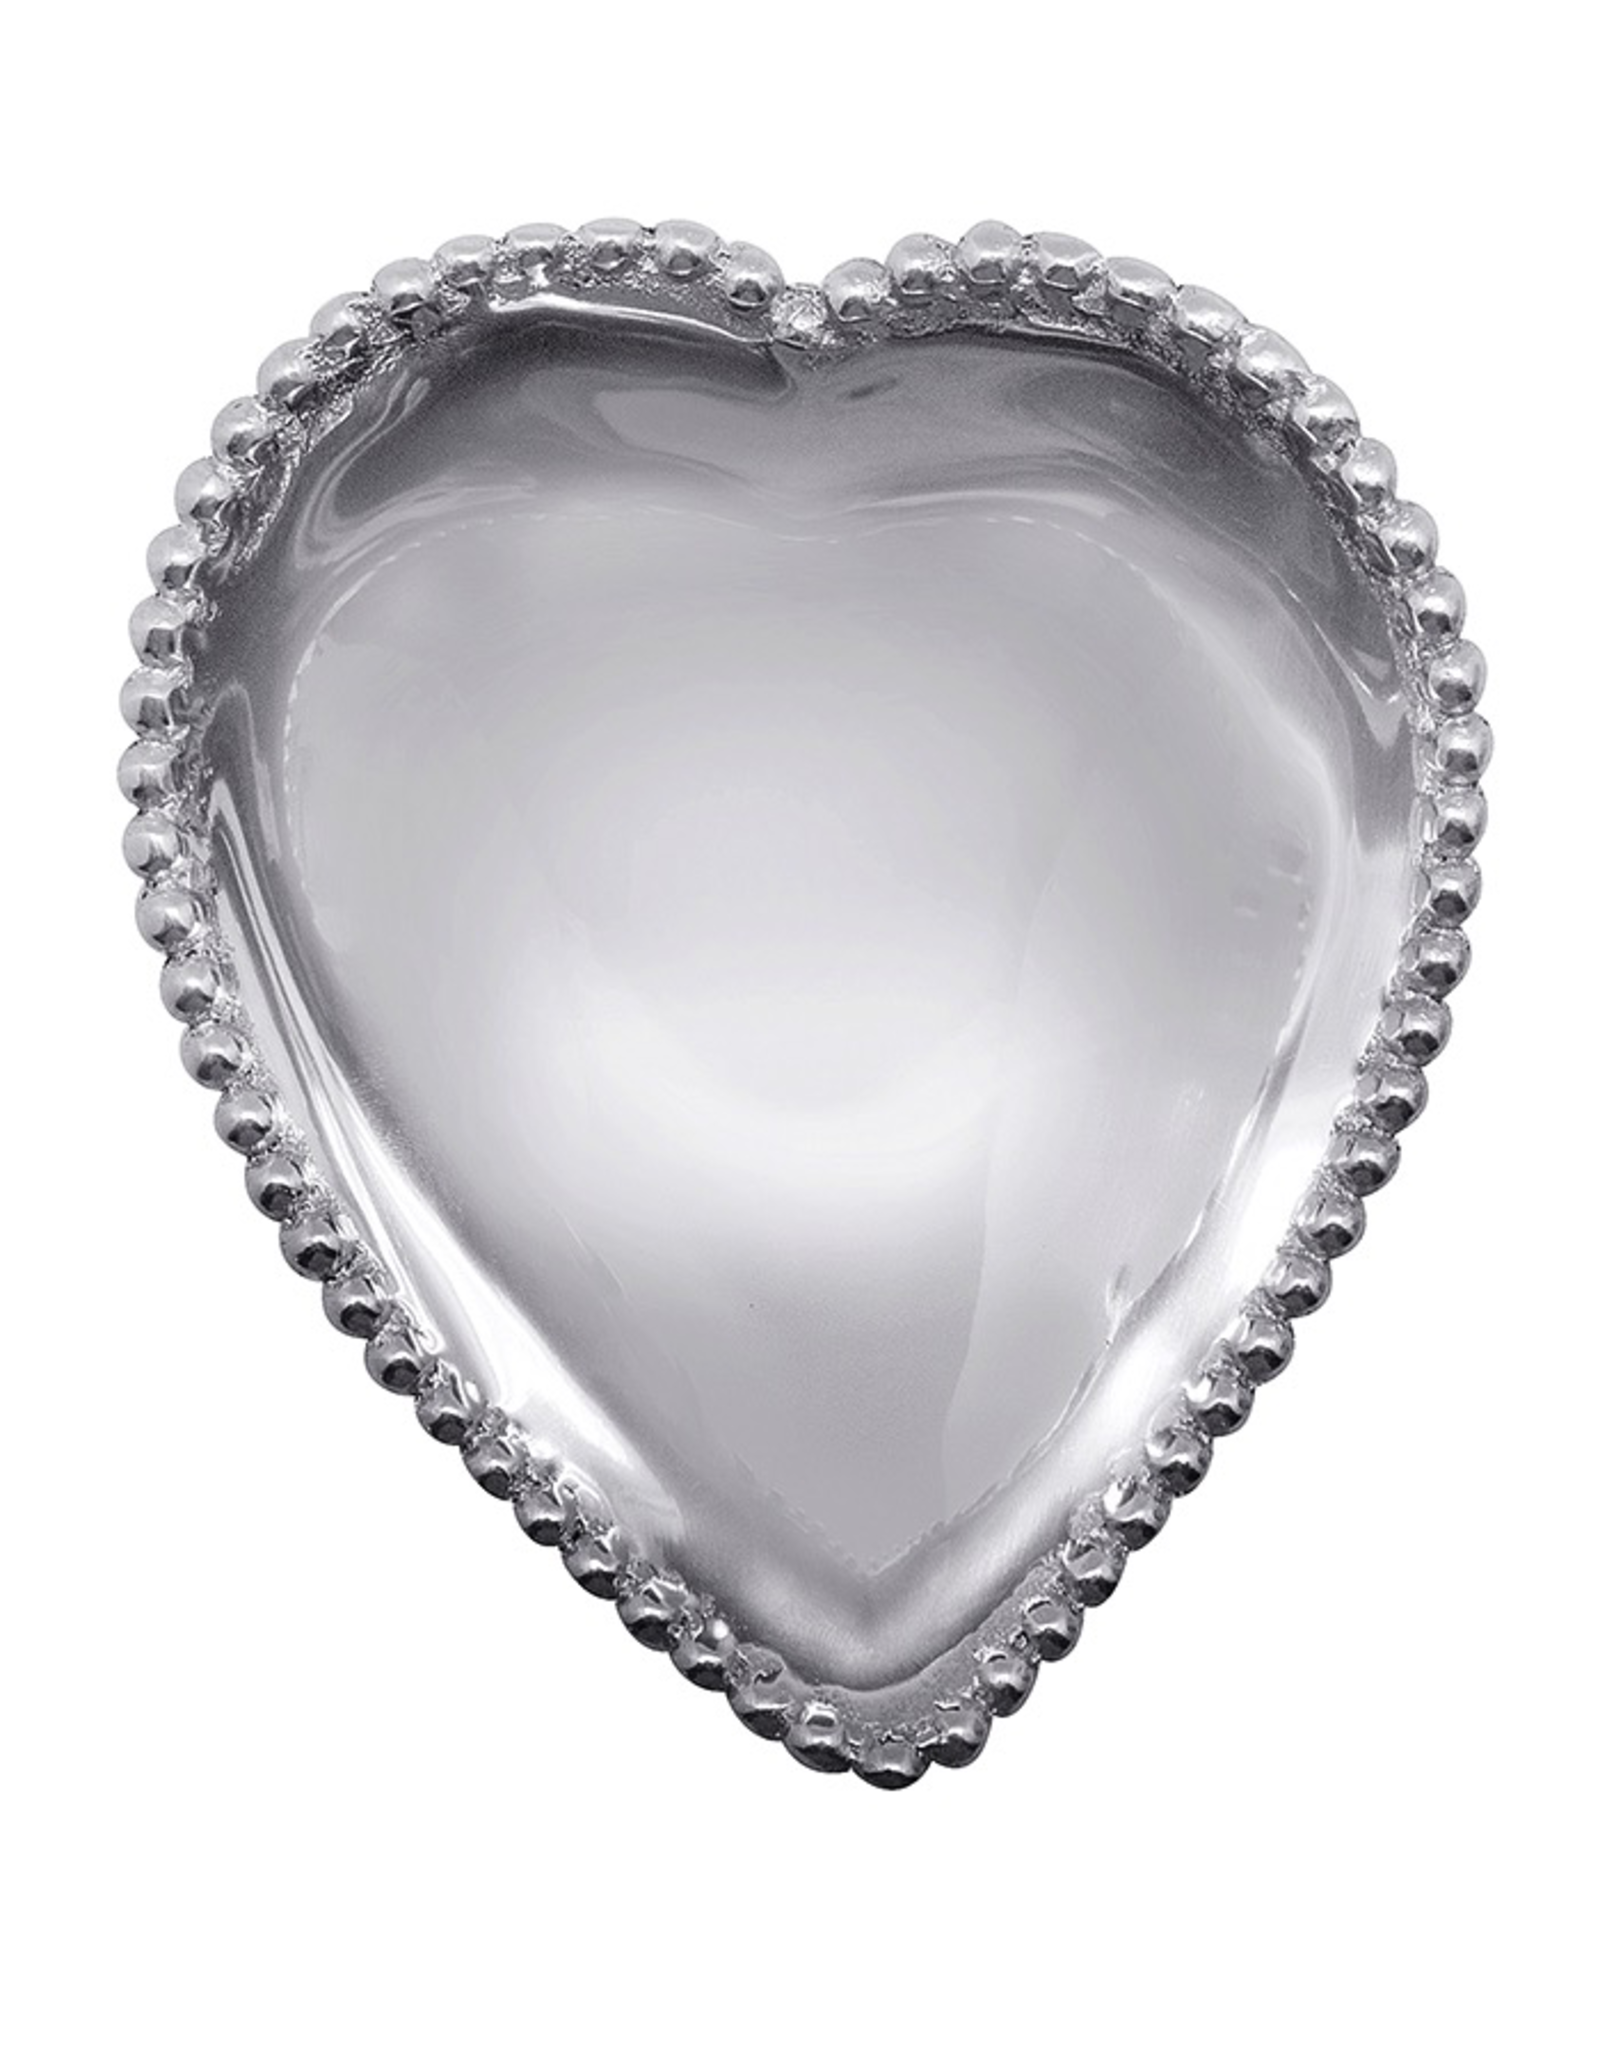 Mariposa Beaded Collection 3408 Beaded Heart Bowl